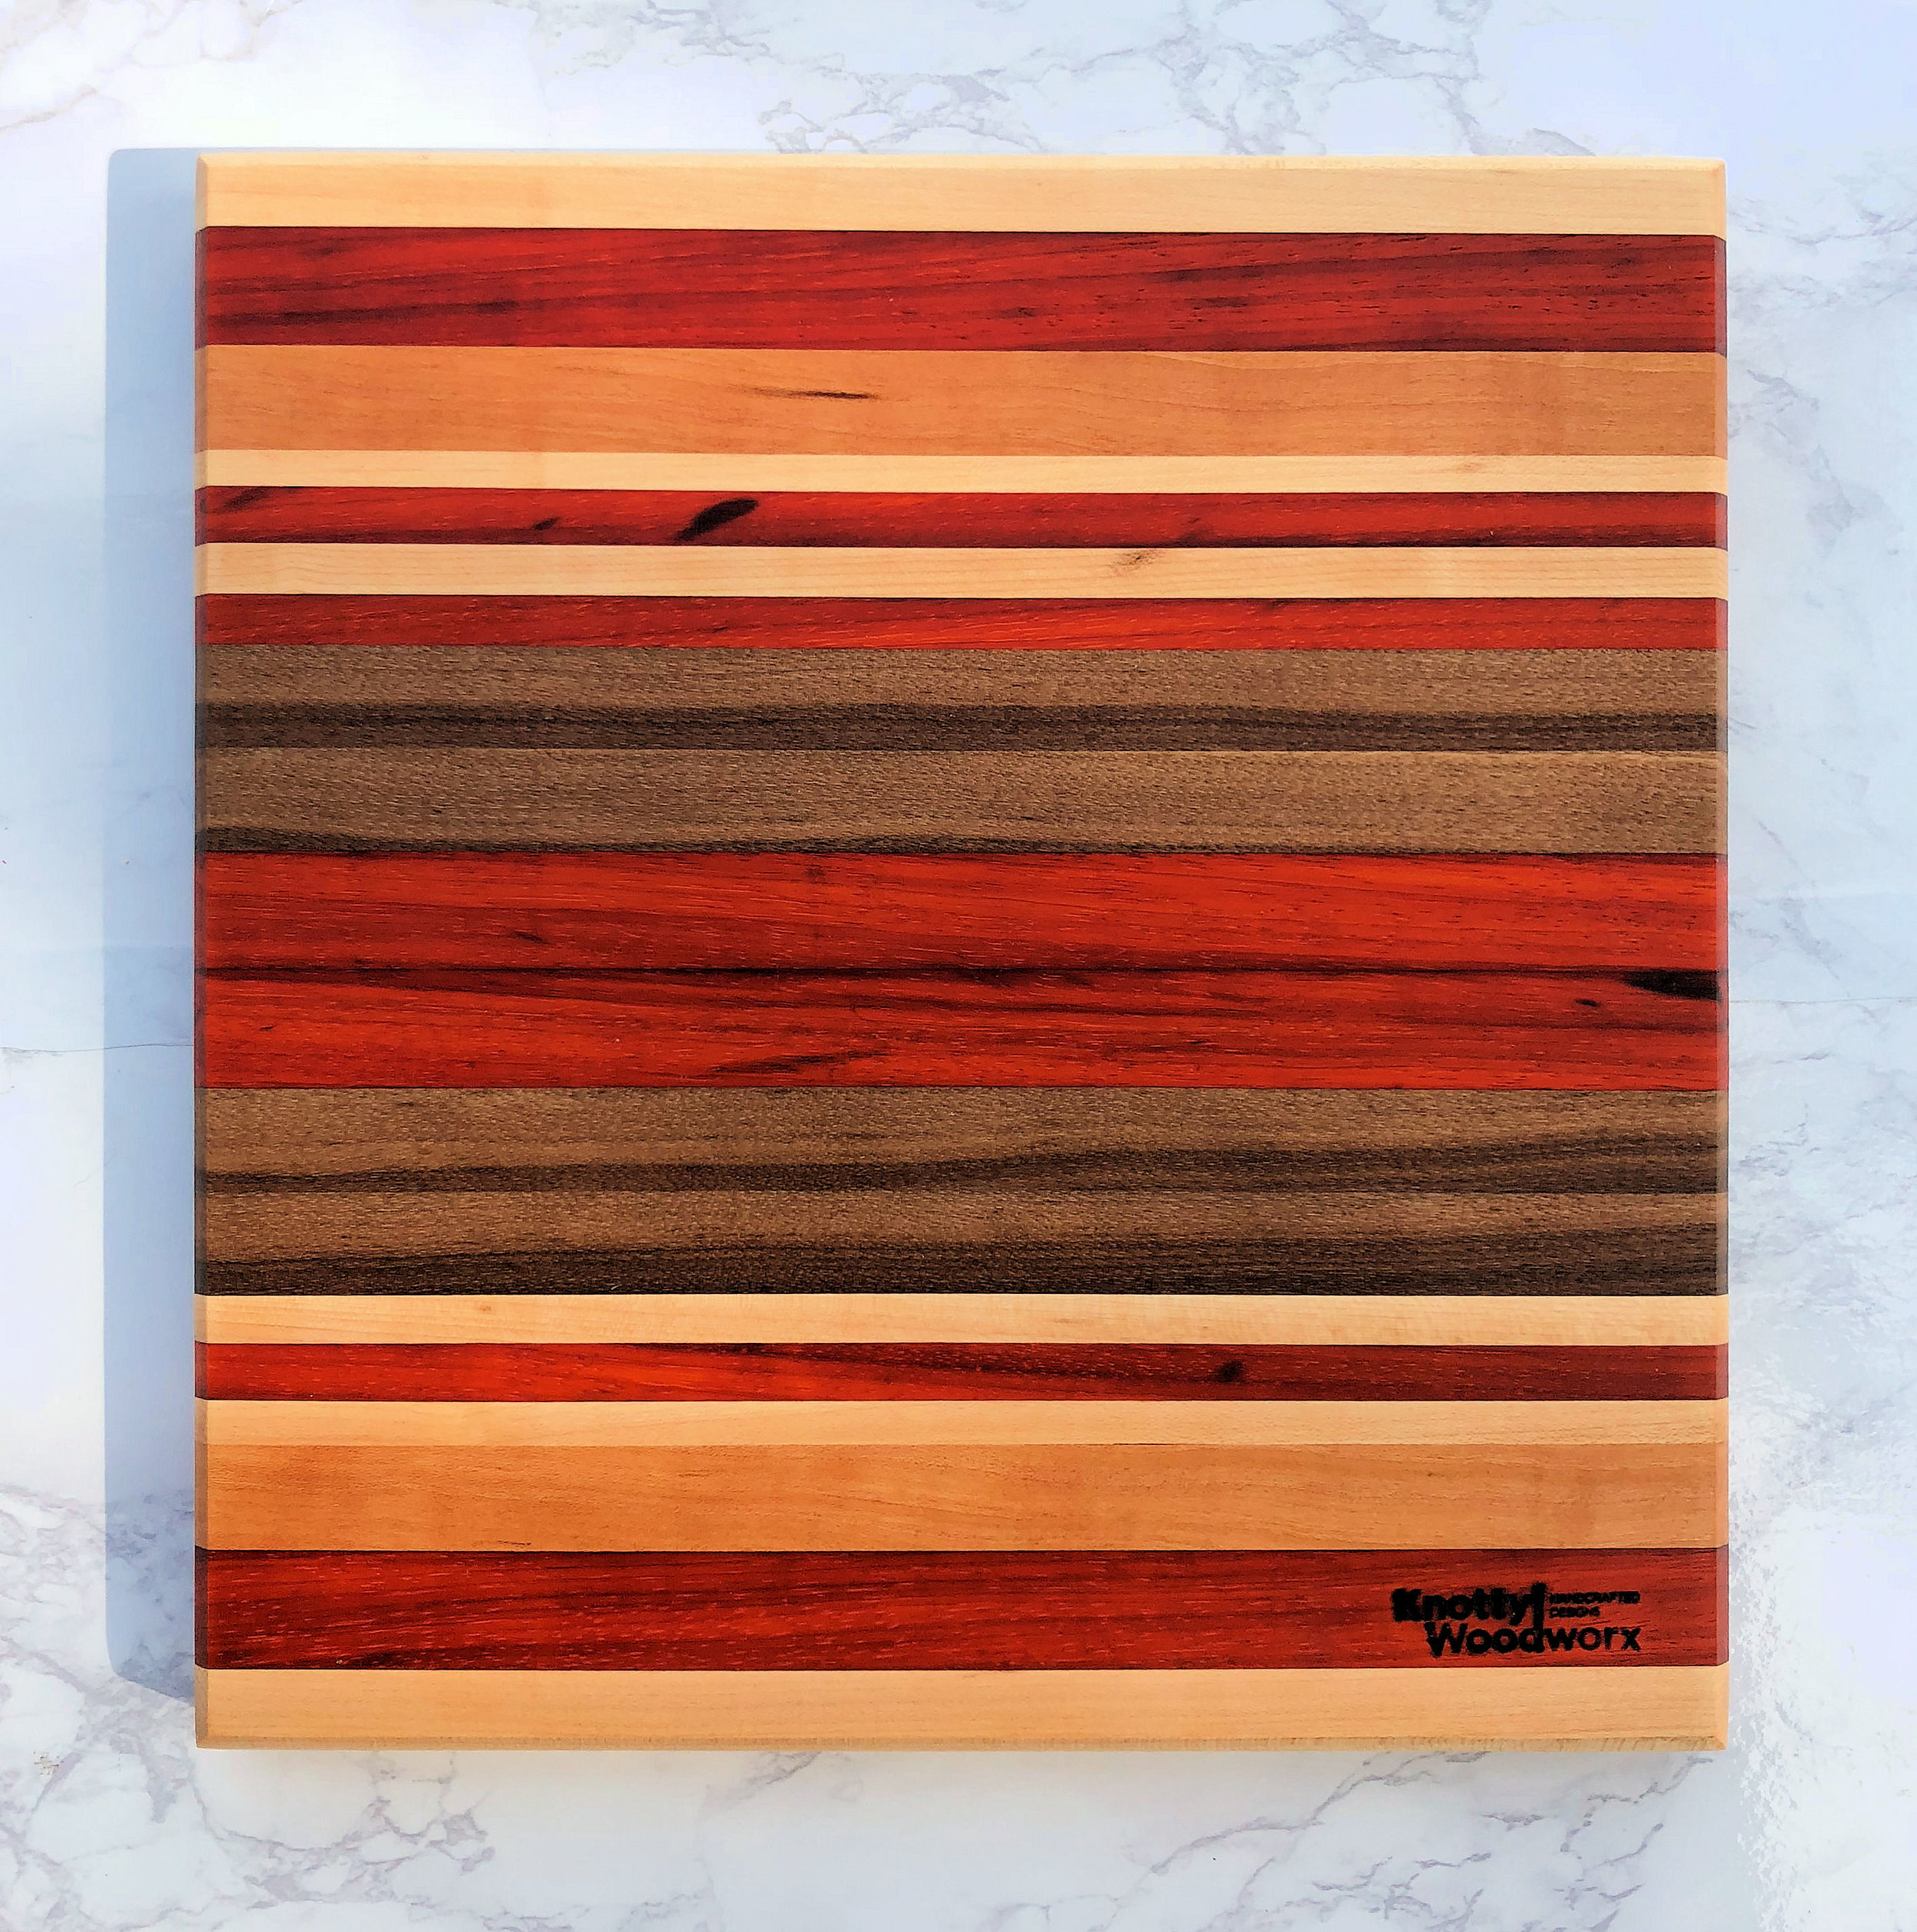 Square-Cutting-Board - Knotty Woodworx.jpg